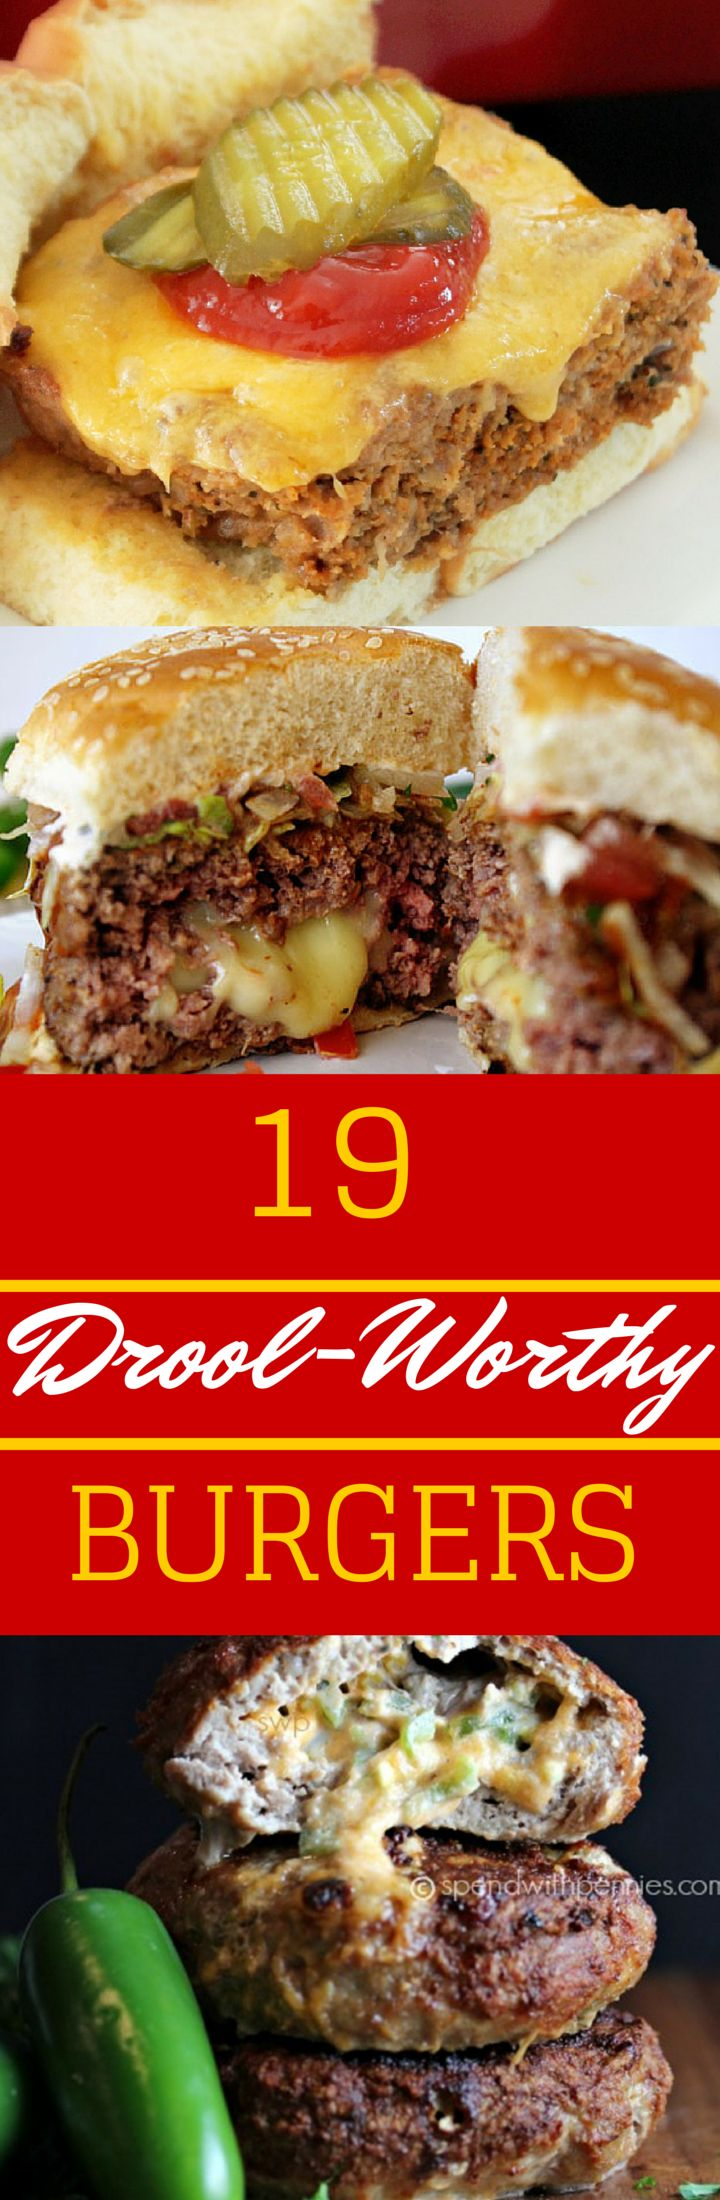 19 Drool-Worthy Burgers for Grilling Season!